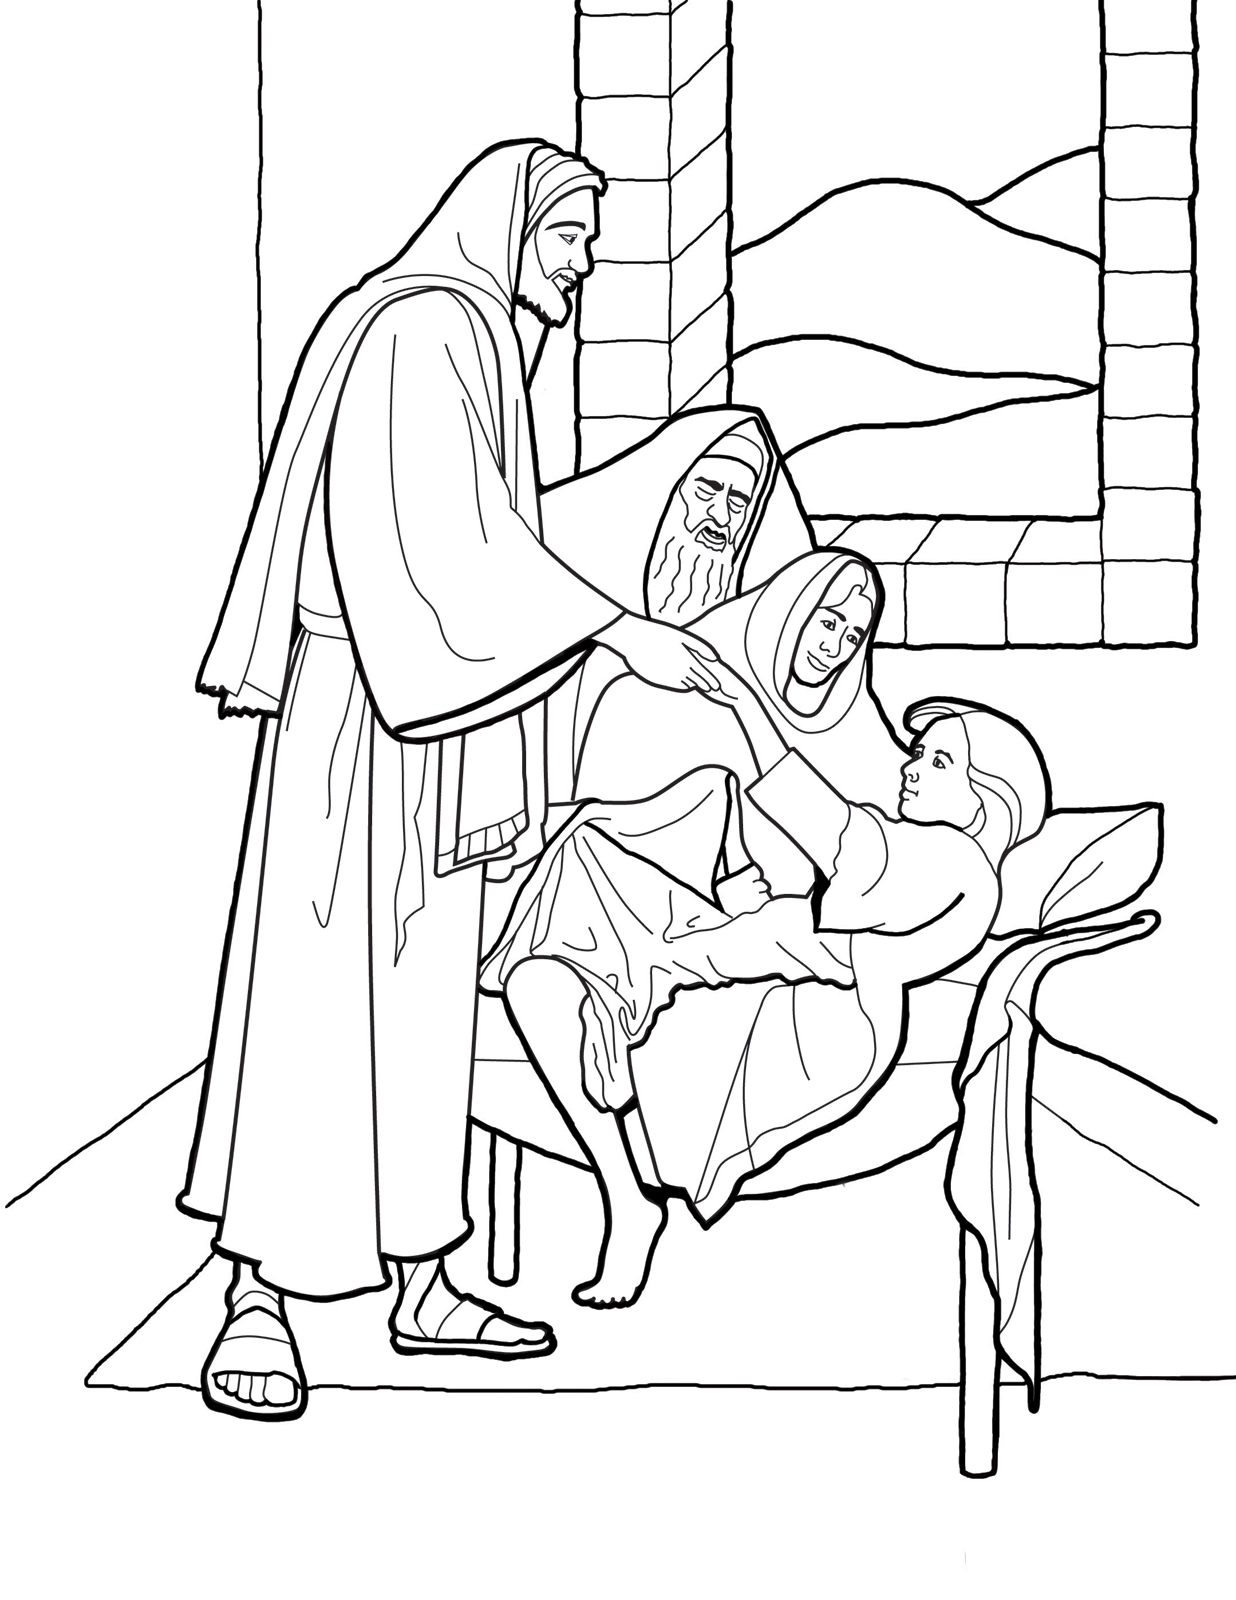 Christ Raising the Daughter of Jairus Coloring Page